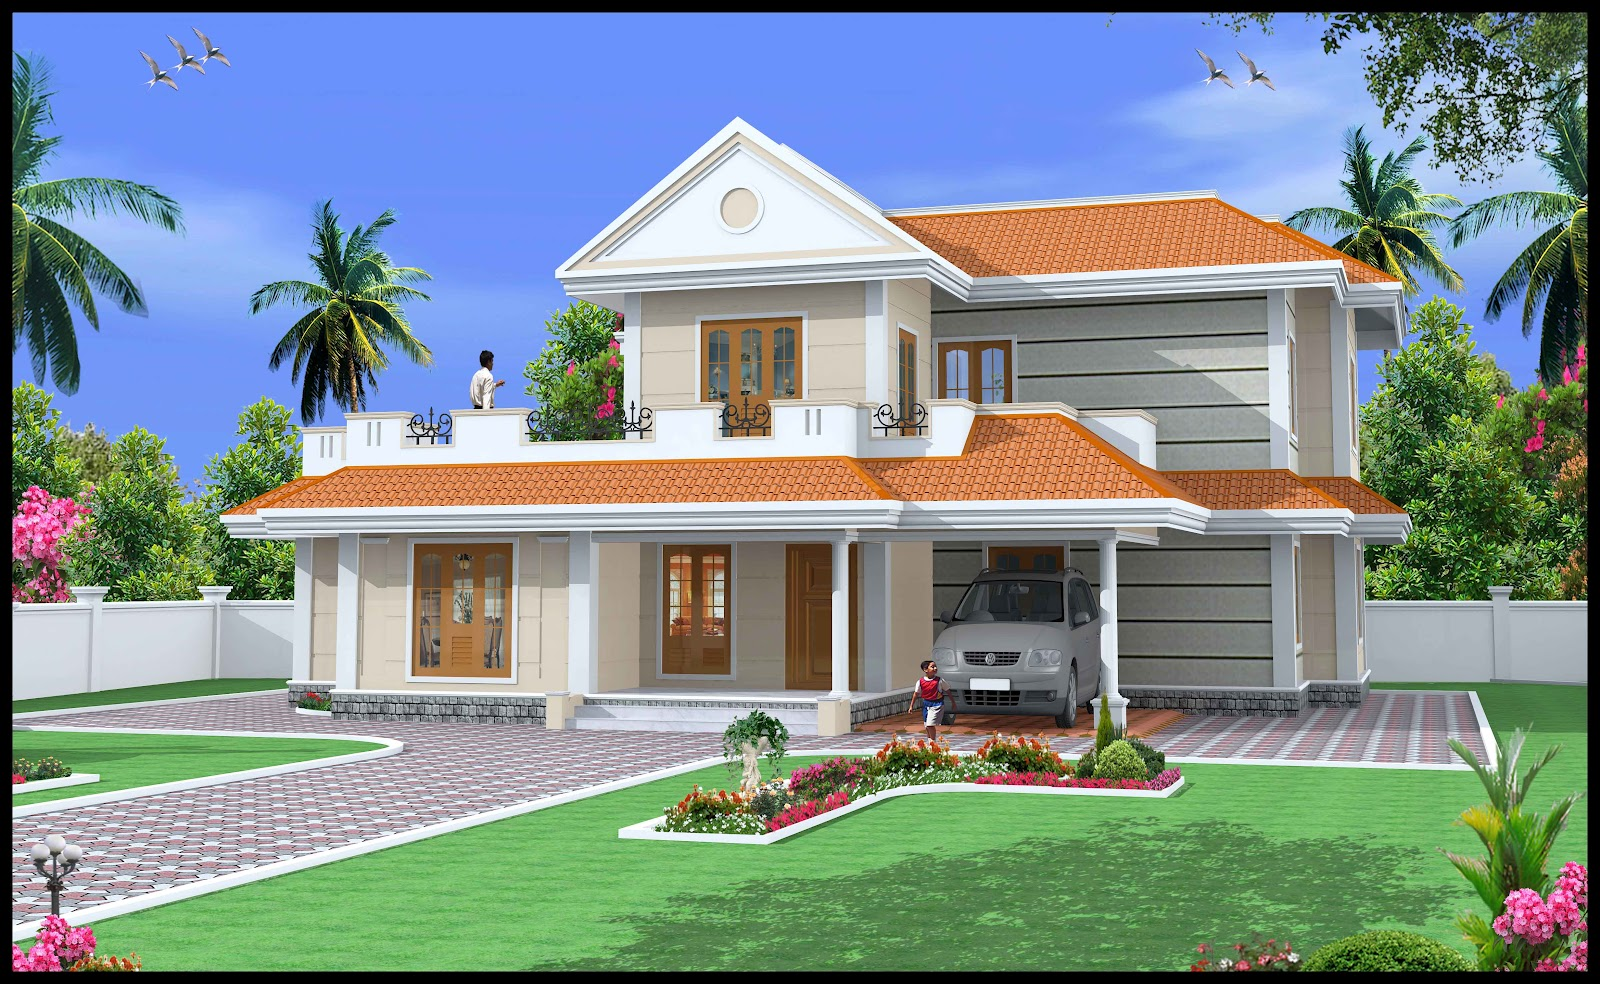 Simple duplex house design indian duplex house designs for Duplex home design india